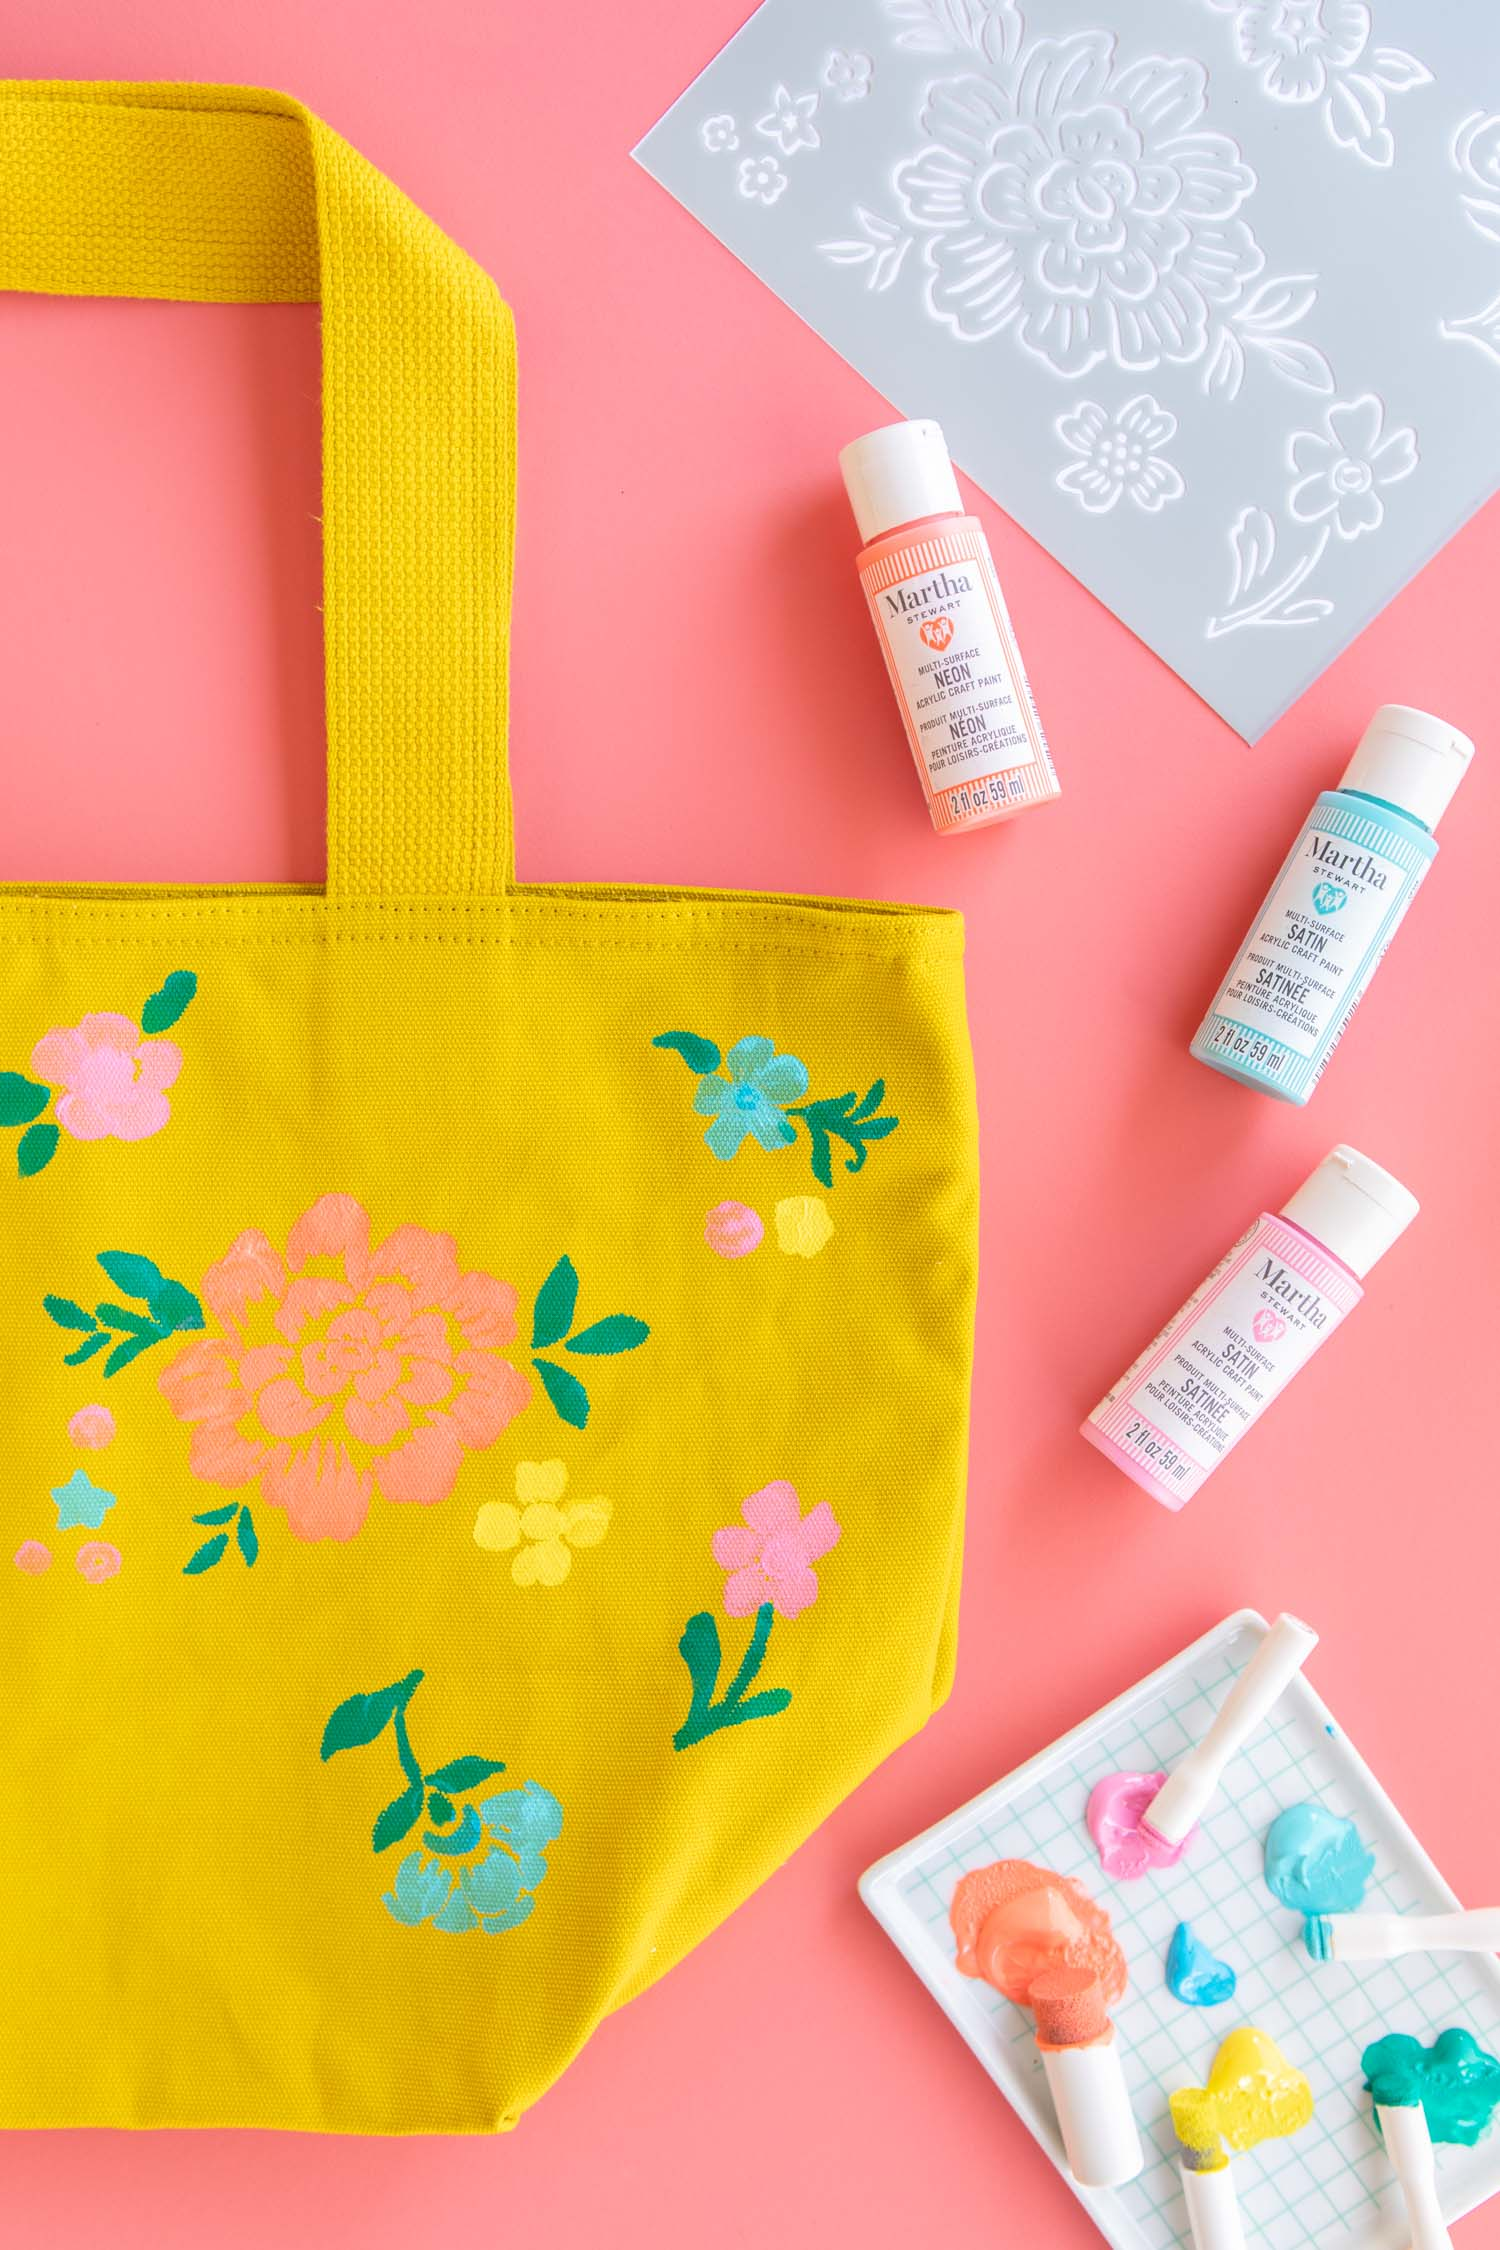 Use paint to decorate a tote bag for an easy Mother's Day gift